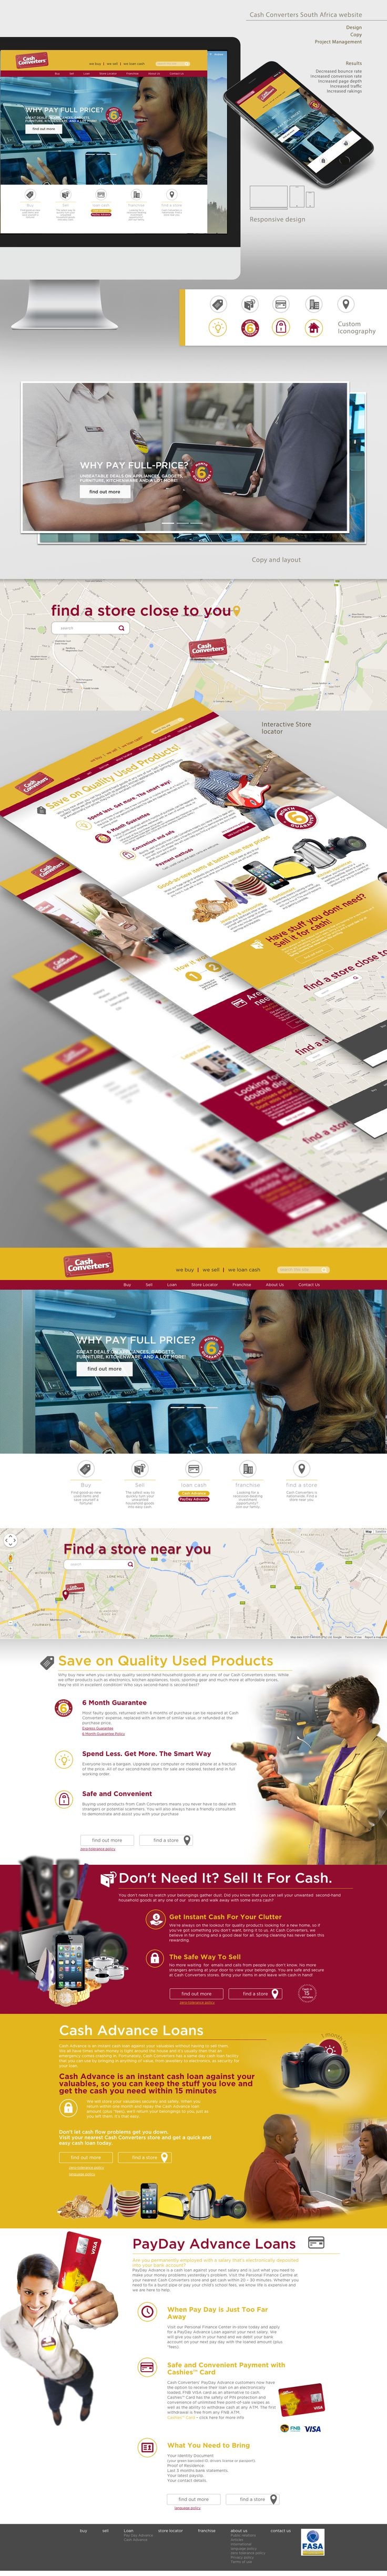 Redesign of the Cash Converters website.